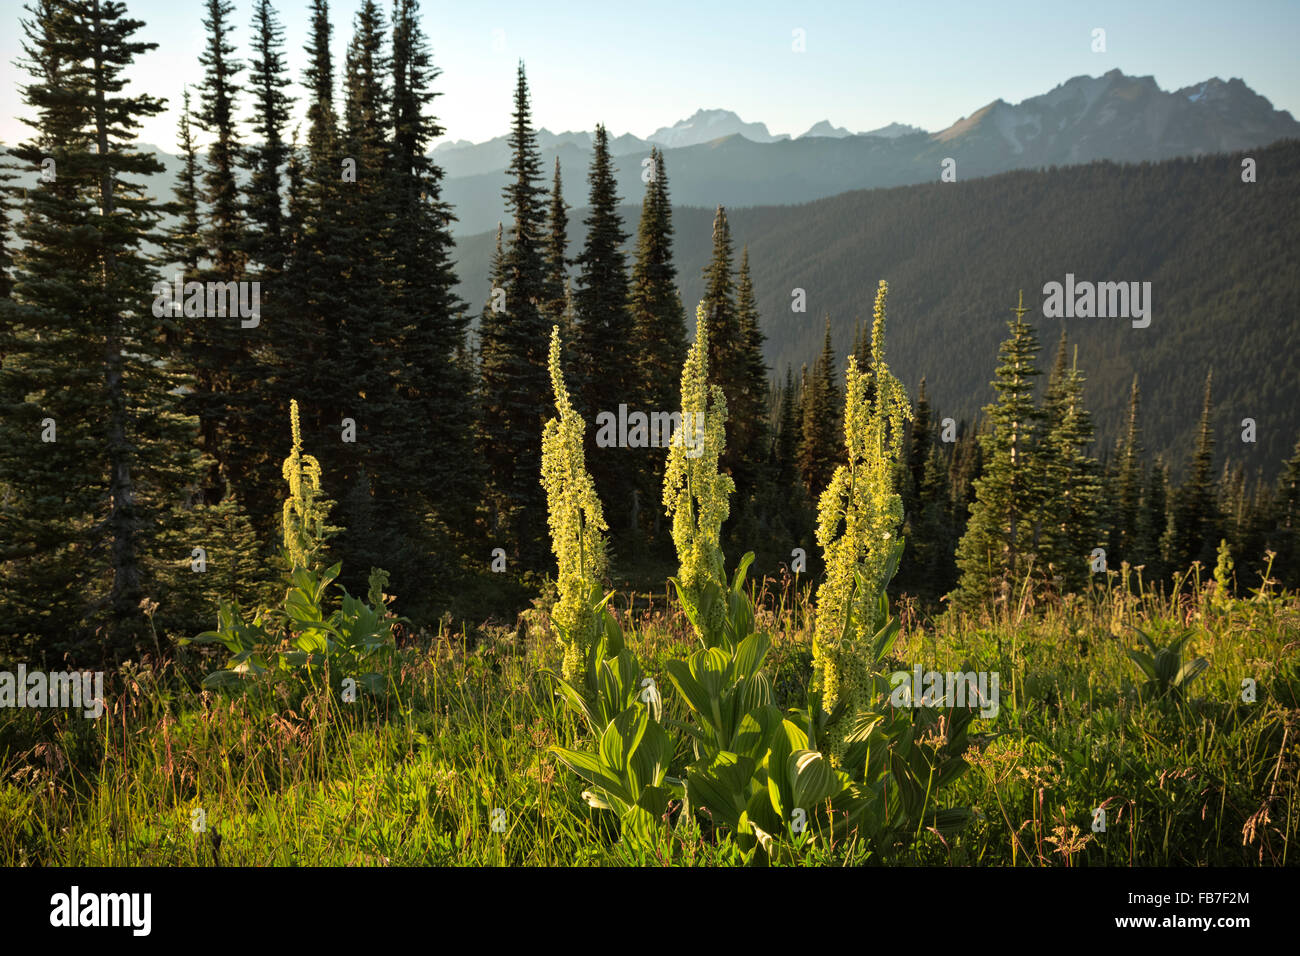 .WASHINGTON - Green False Hellebore in the late afternoon light on the summit of Flower Dome in the Glacier Peak - Stock Image